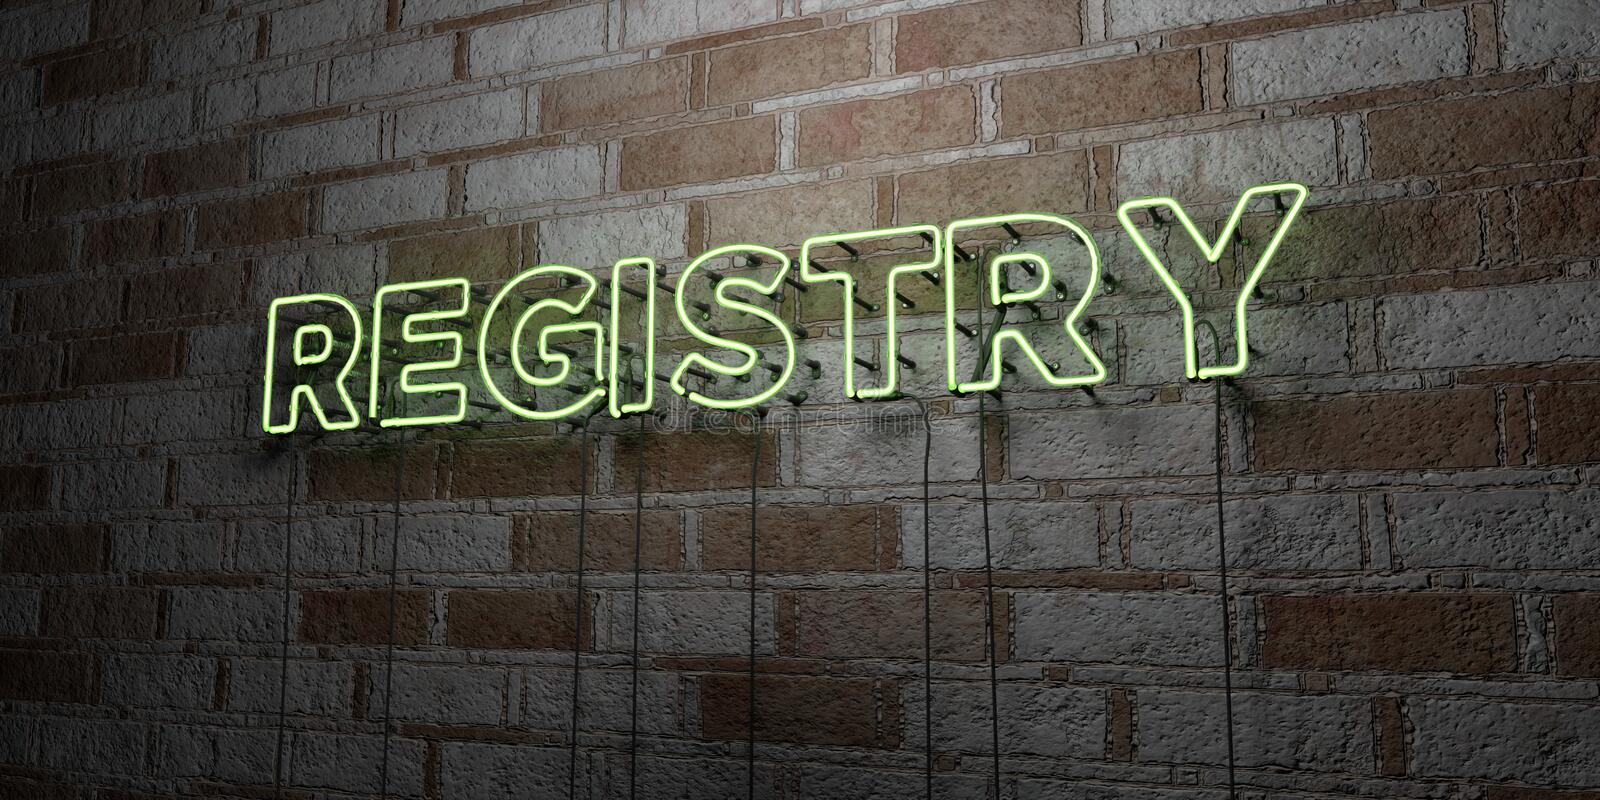 REGISTRY - Glowing Neon Sign on stonework wall - 3D rendered royalty free stock illustration. Can be used for online banner ads and direct mailers royalty free illustration